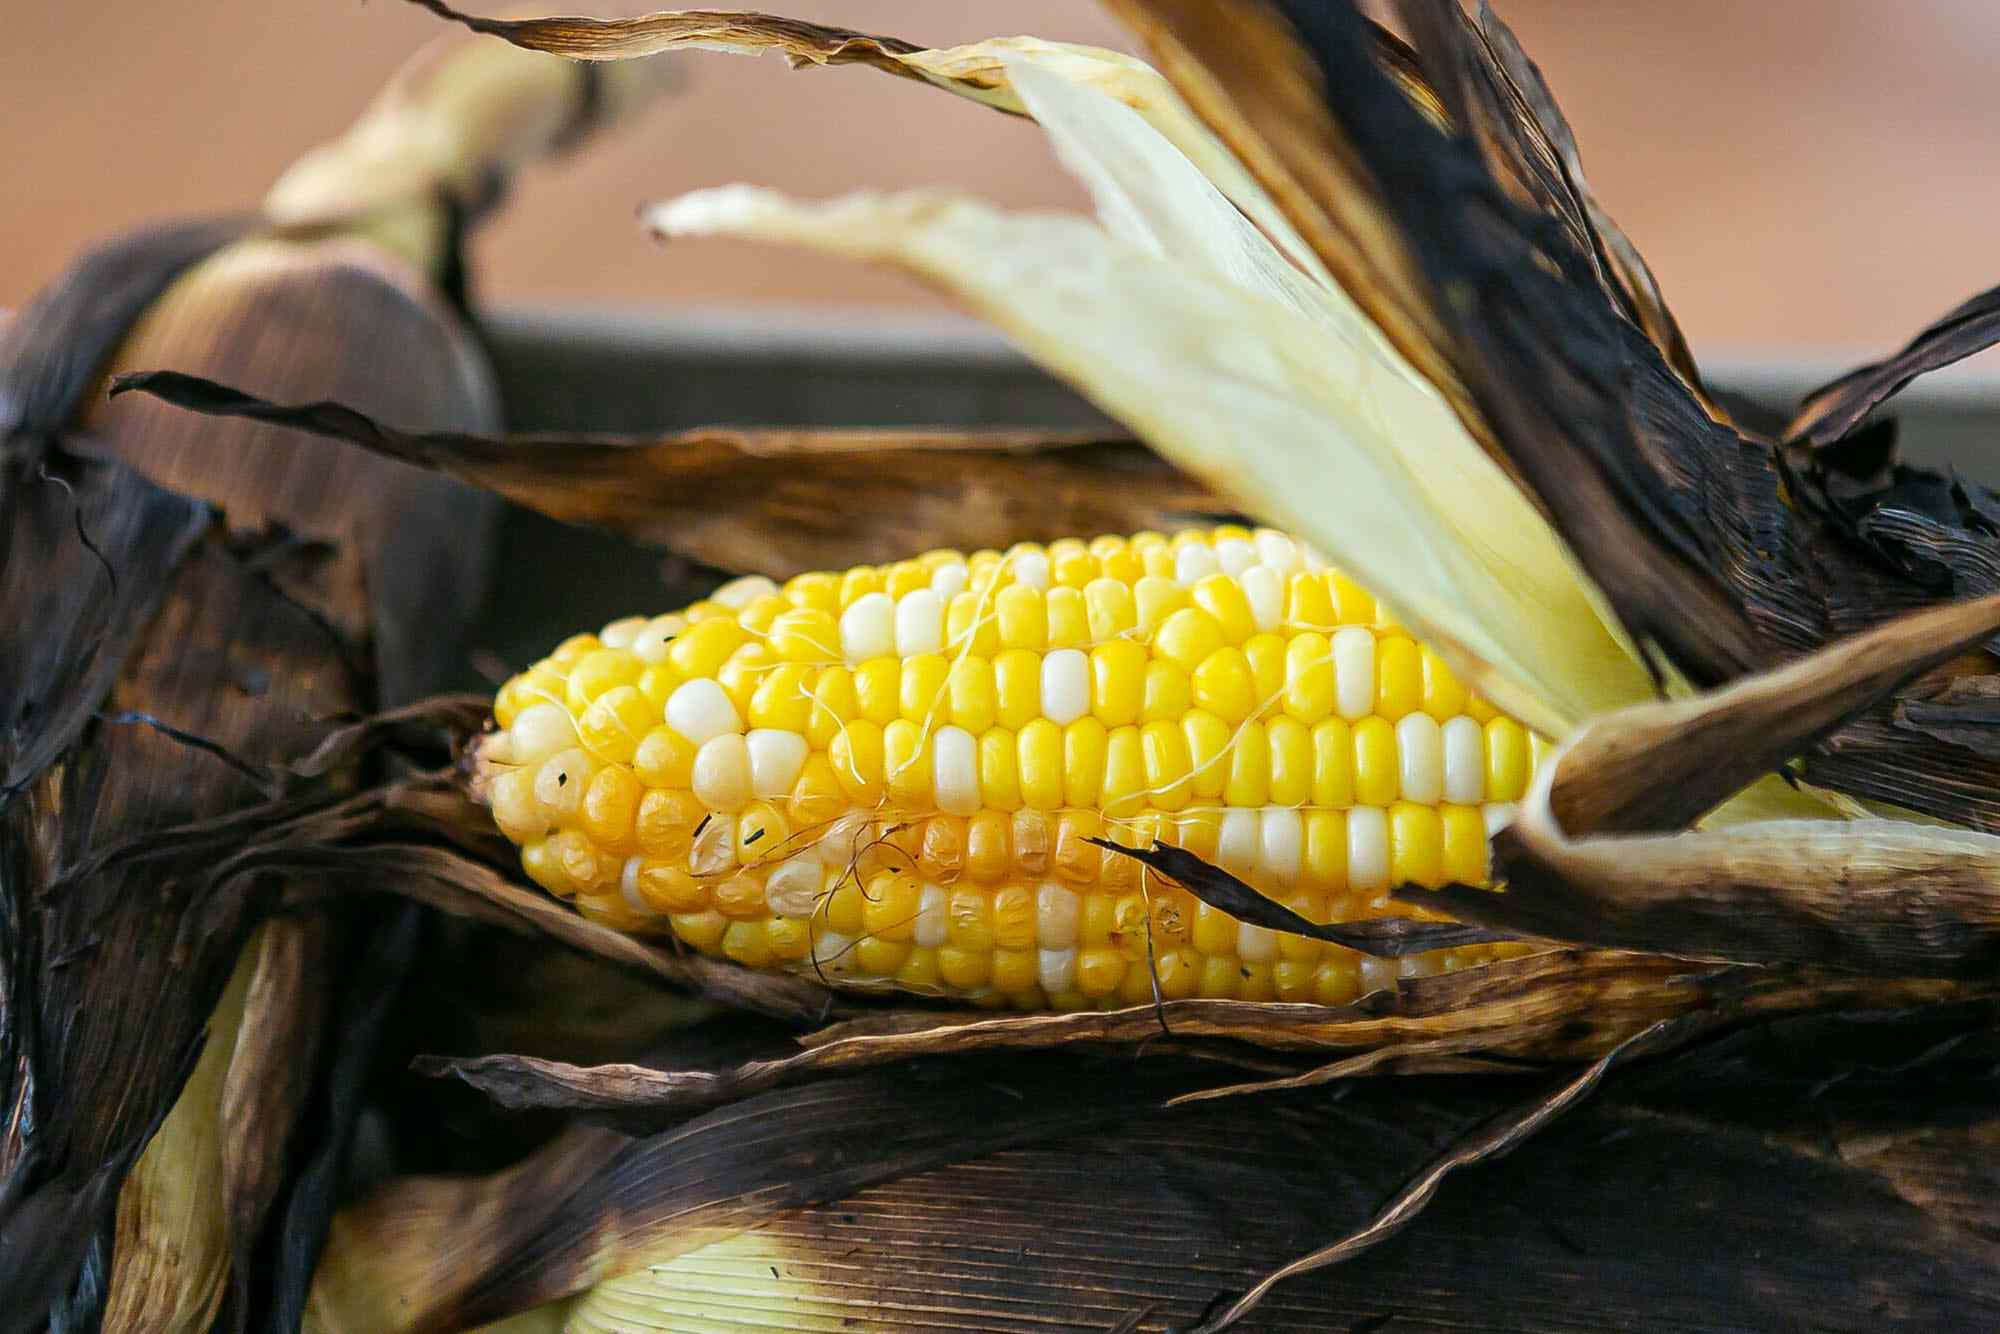 Corn on the cob with husks blackened after being grilled